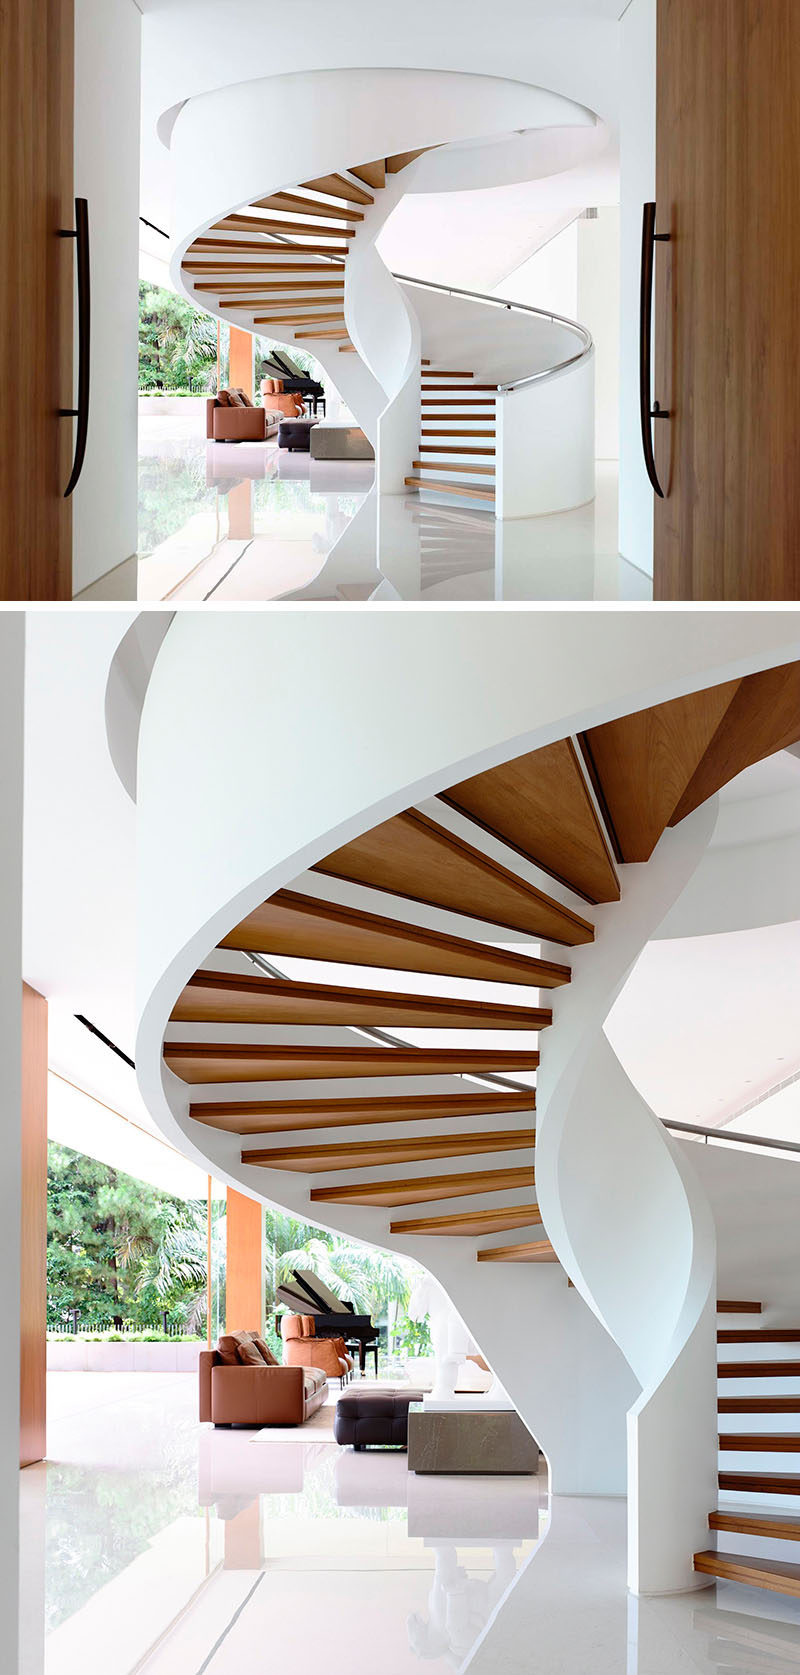 White And Wood Spiral Stairs 030317 931 12 800x1675